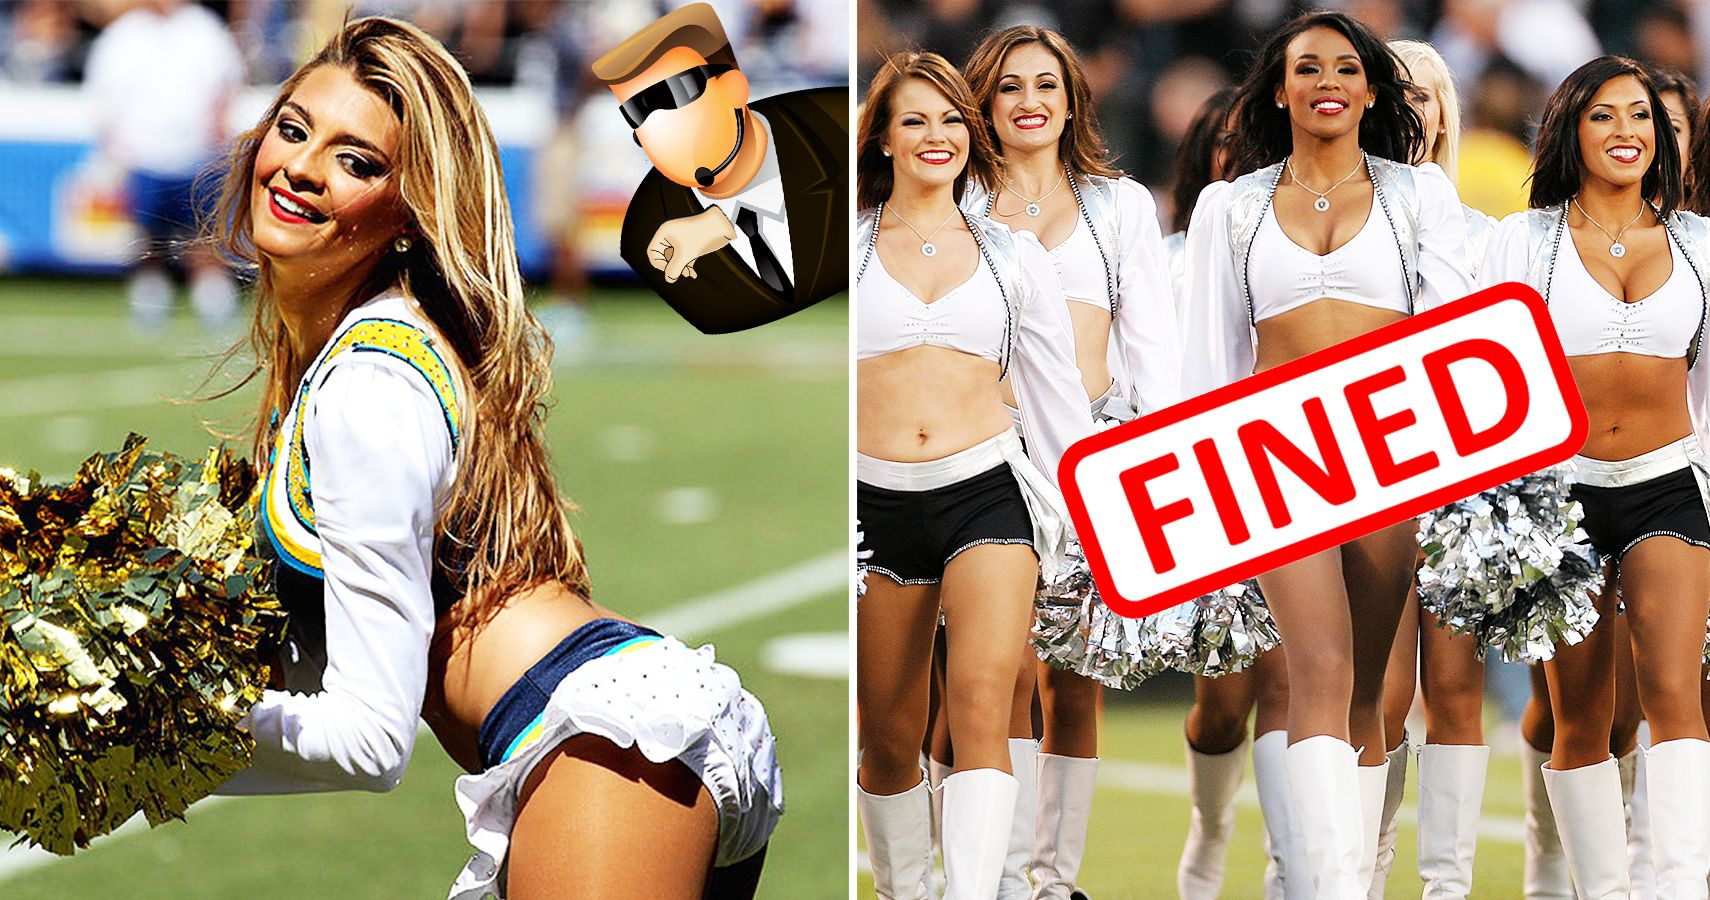 Dating nfl Cheerleader Eine lesbische Tipps datieren